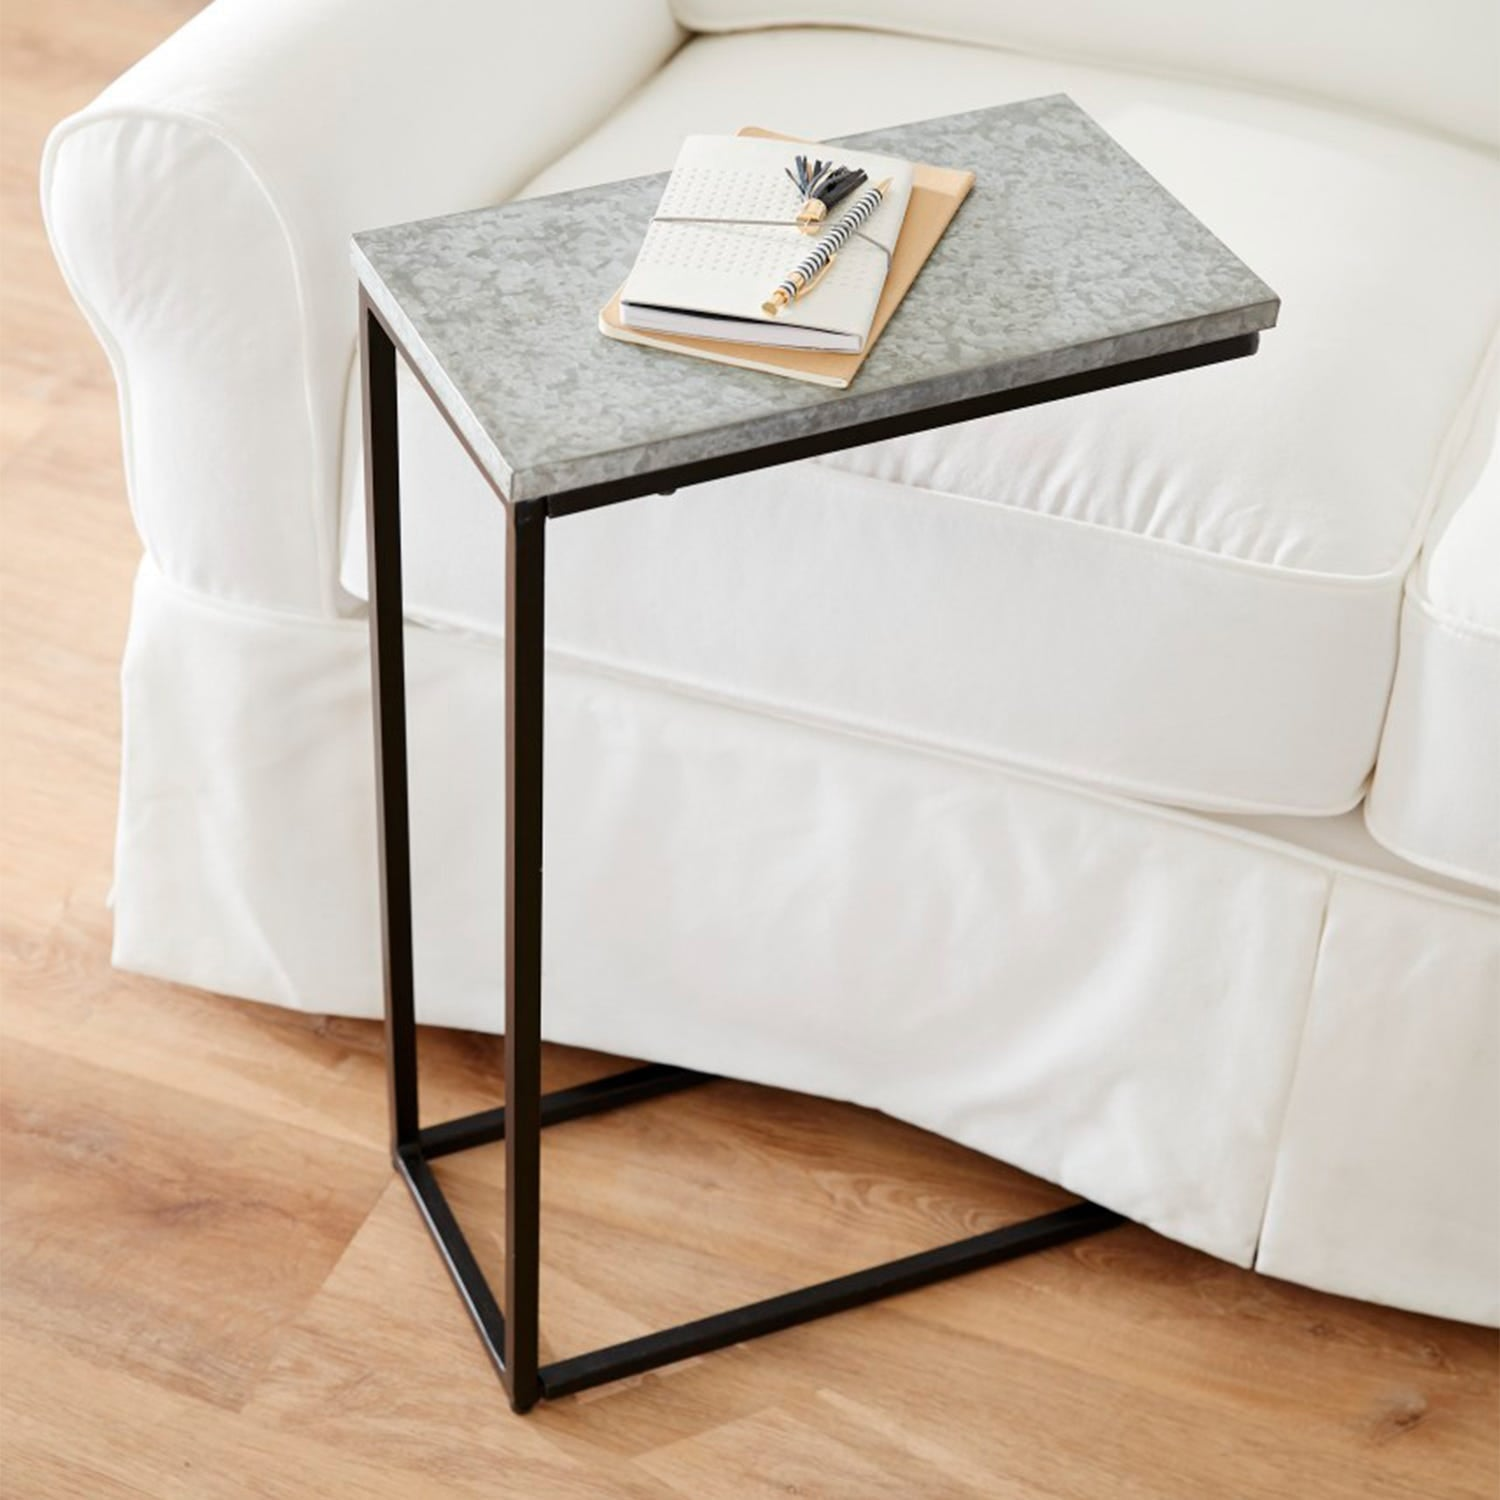 Best Small Space Furniture From Pier 1 Popsugar Home